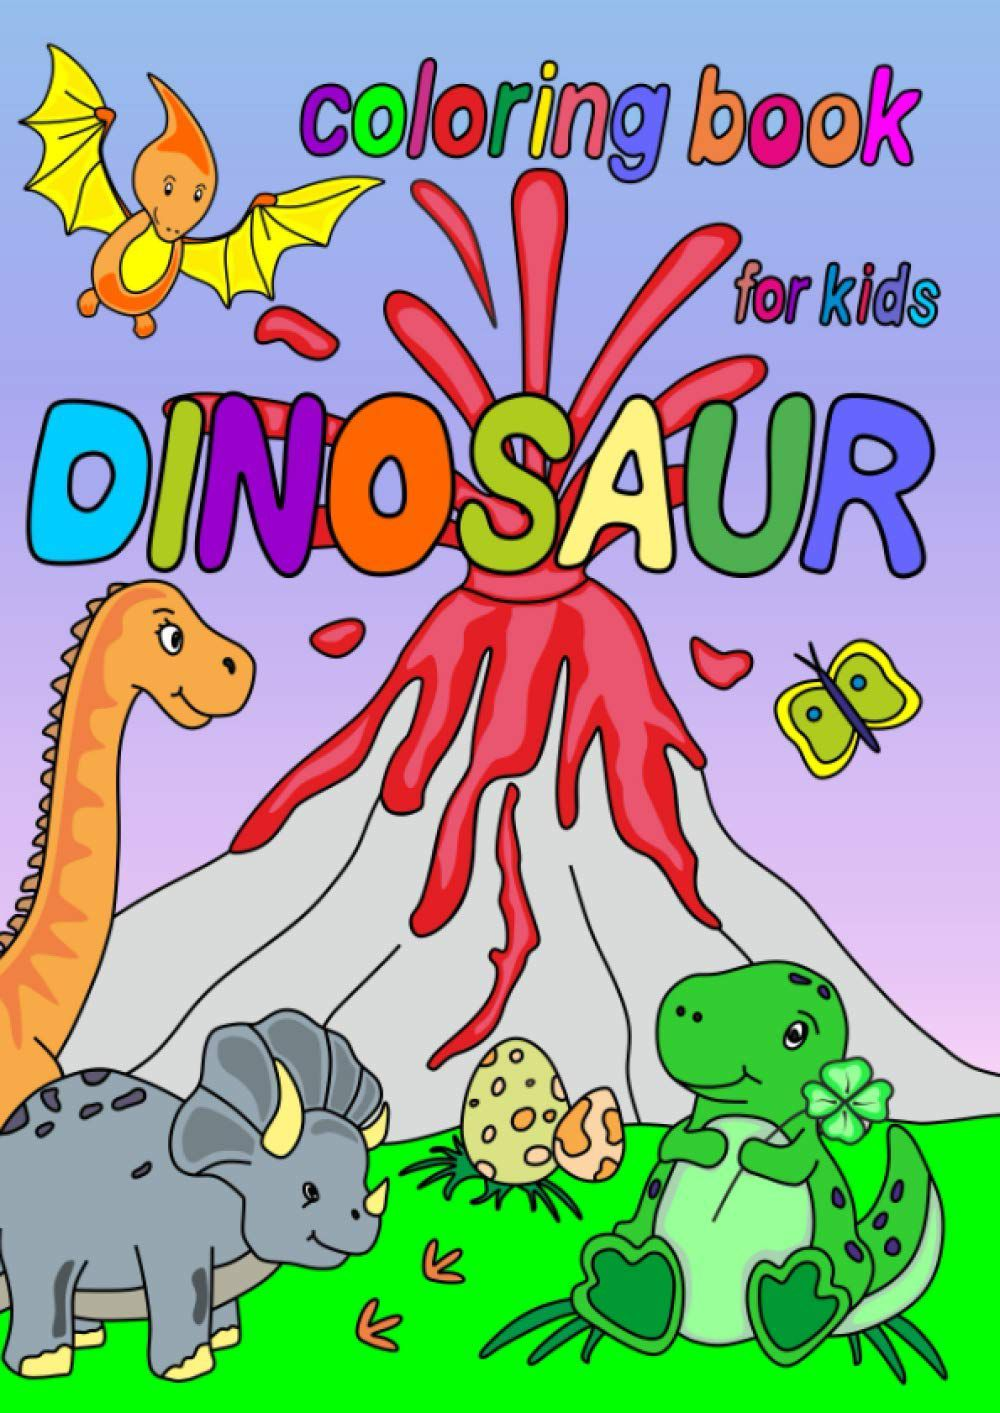 Dinosaur Coloring Book for Kids by ColoredUniverse with an exploding volcano and a few dinosaurs on the cover